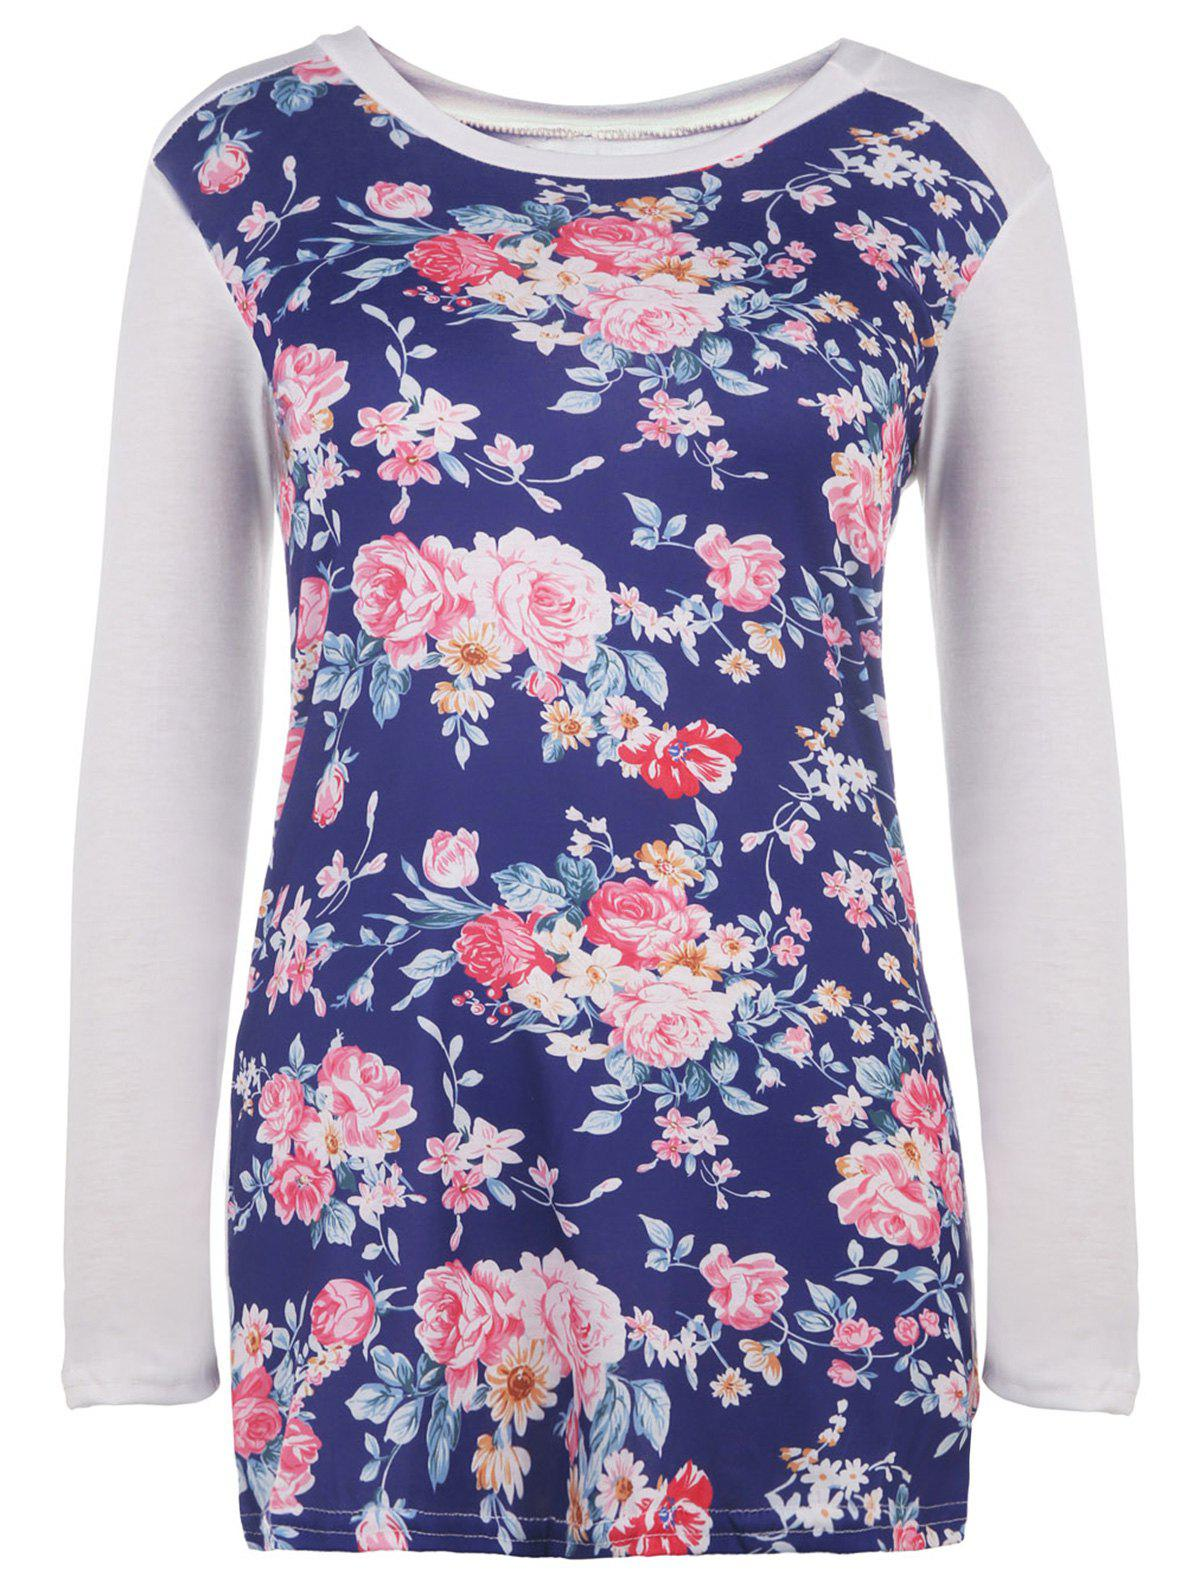 Chic Floral Printed Long Sleeve Baseball T-Shirt For Women